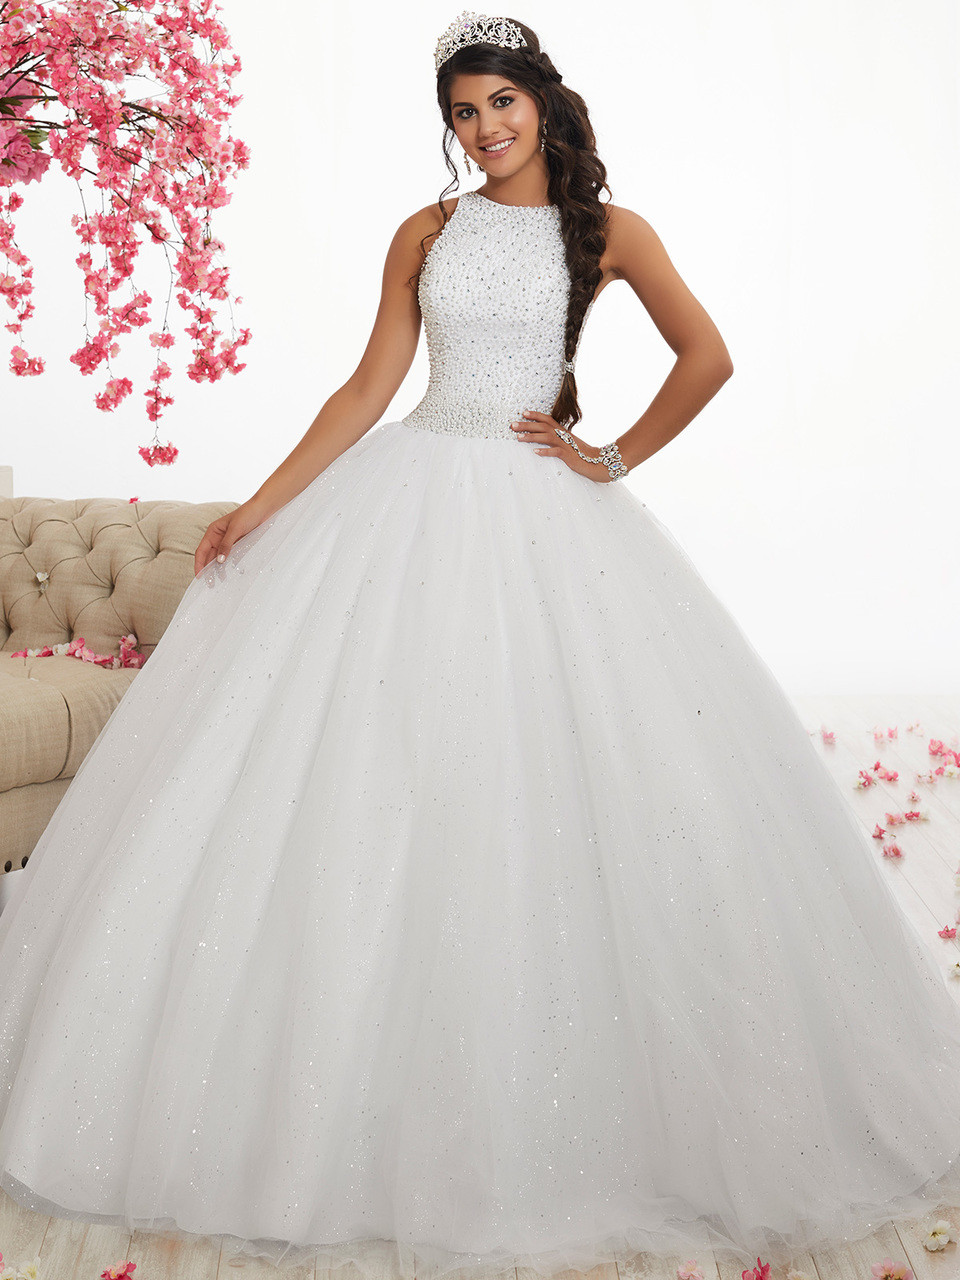 High Neck Ball Gown Fiesta Quinceanera Dress 56318 ...